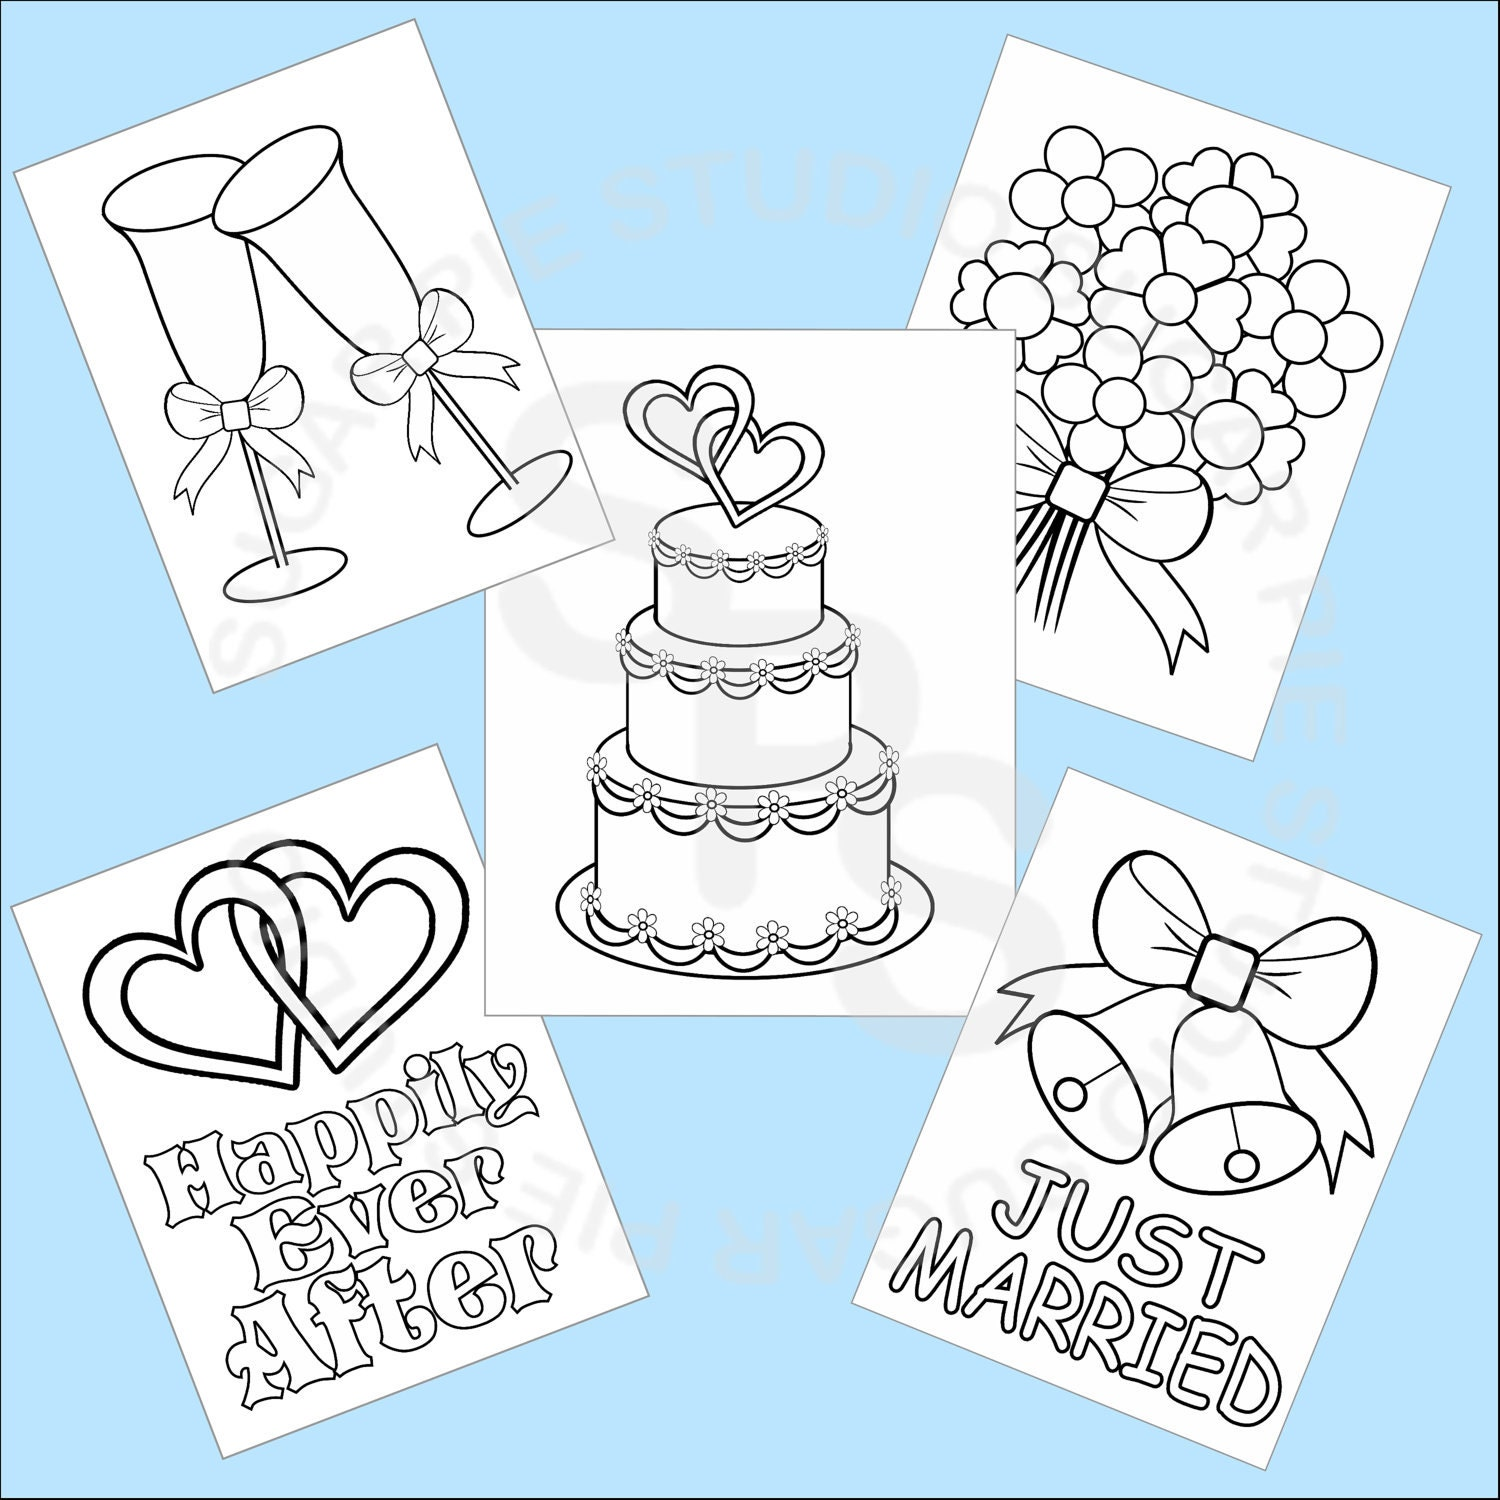 Magnificent Frozen Coloring Book Thick Paint With Water Coloring Books Regular Minions Coloring Book Coloring Book Flowers Youthful Coloring Book Solutions GrayHow To Create A Coloring Book 5 Printable Wedding Favor Kids Coloring Pages PDF Or JPEG File